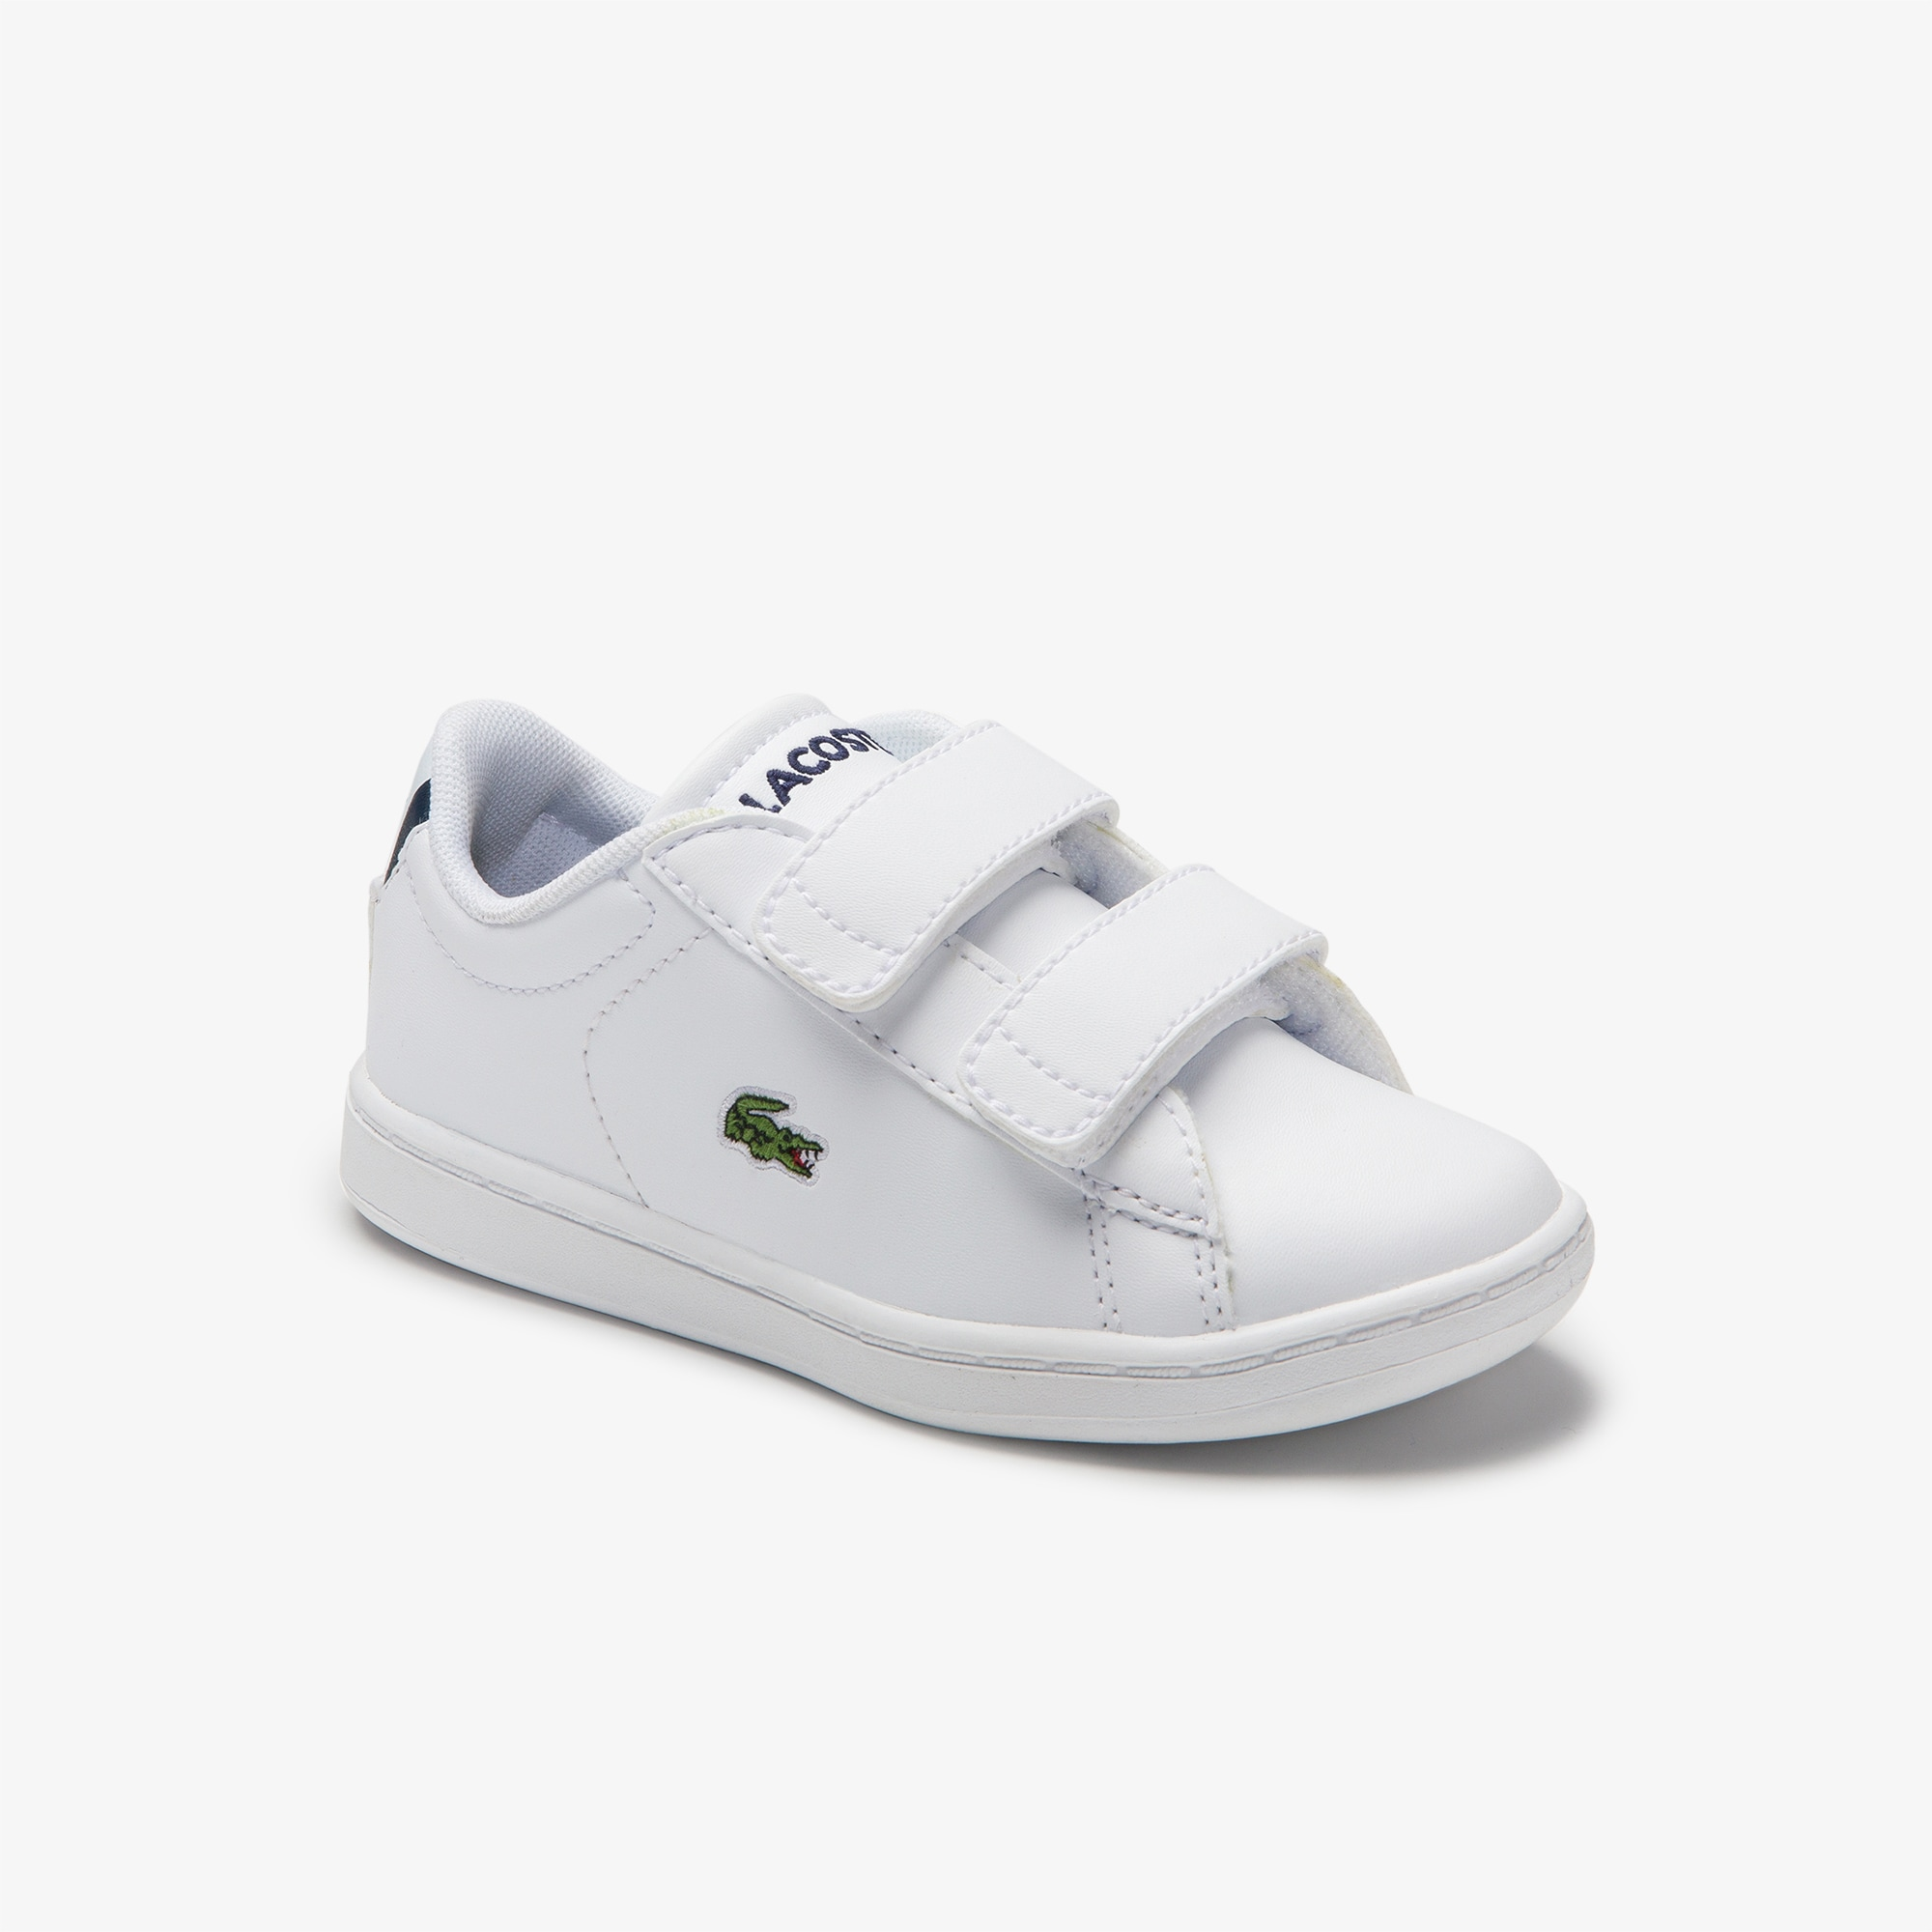 Carnaby Evo kindersneakers